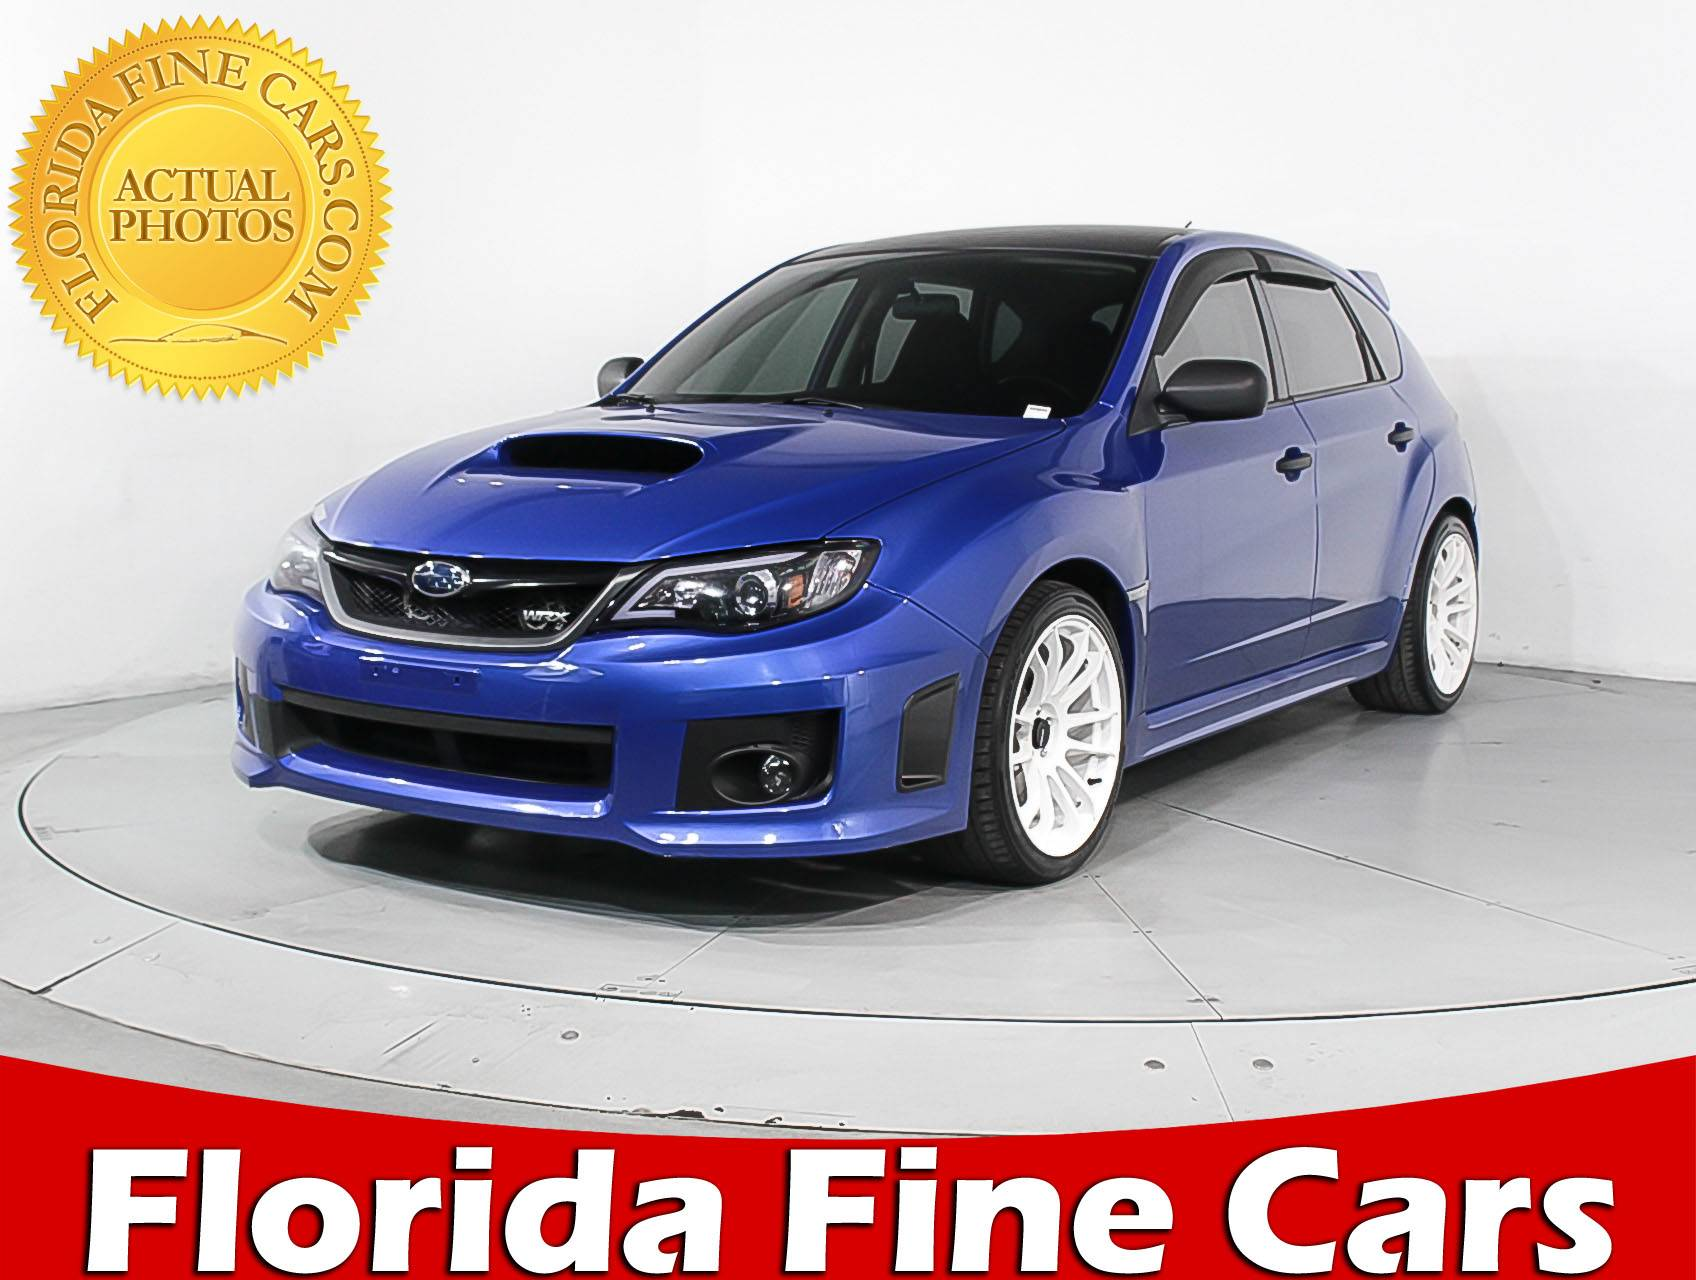 Used 2012 SUBARU IMPREZA WRX Hatchback for sale in MIAMI FL